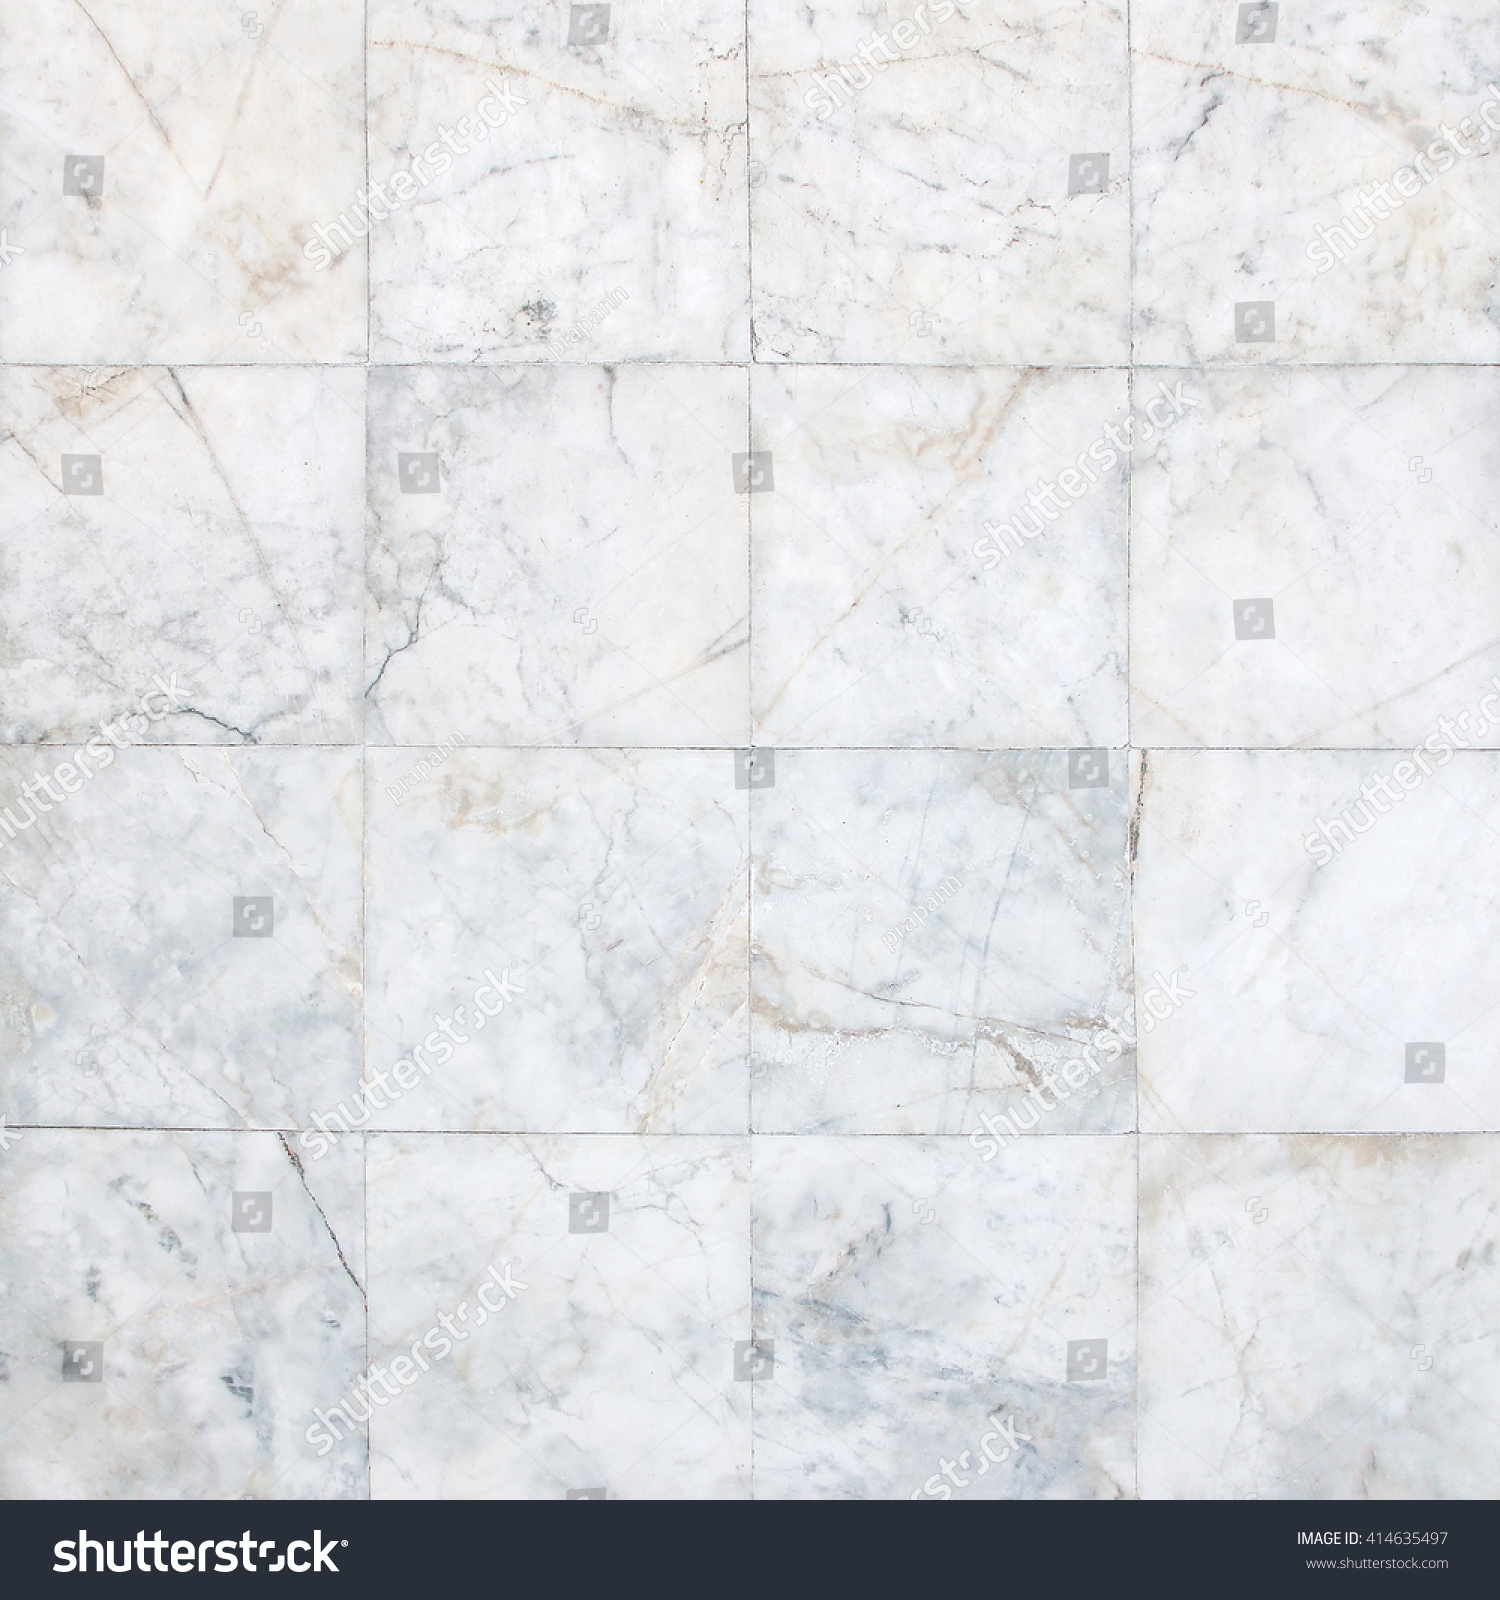 Popular Wallpaper Marble Wall - stock-photo-white-marble-wall-texture-wallpaper-background-414635497  Trends_457874.jpg